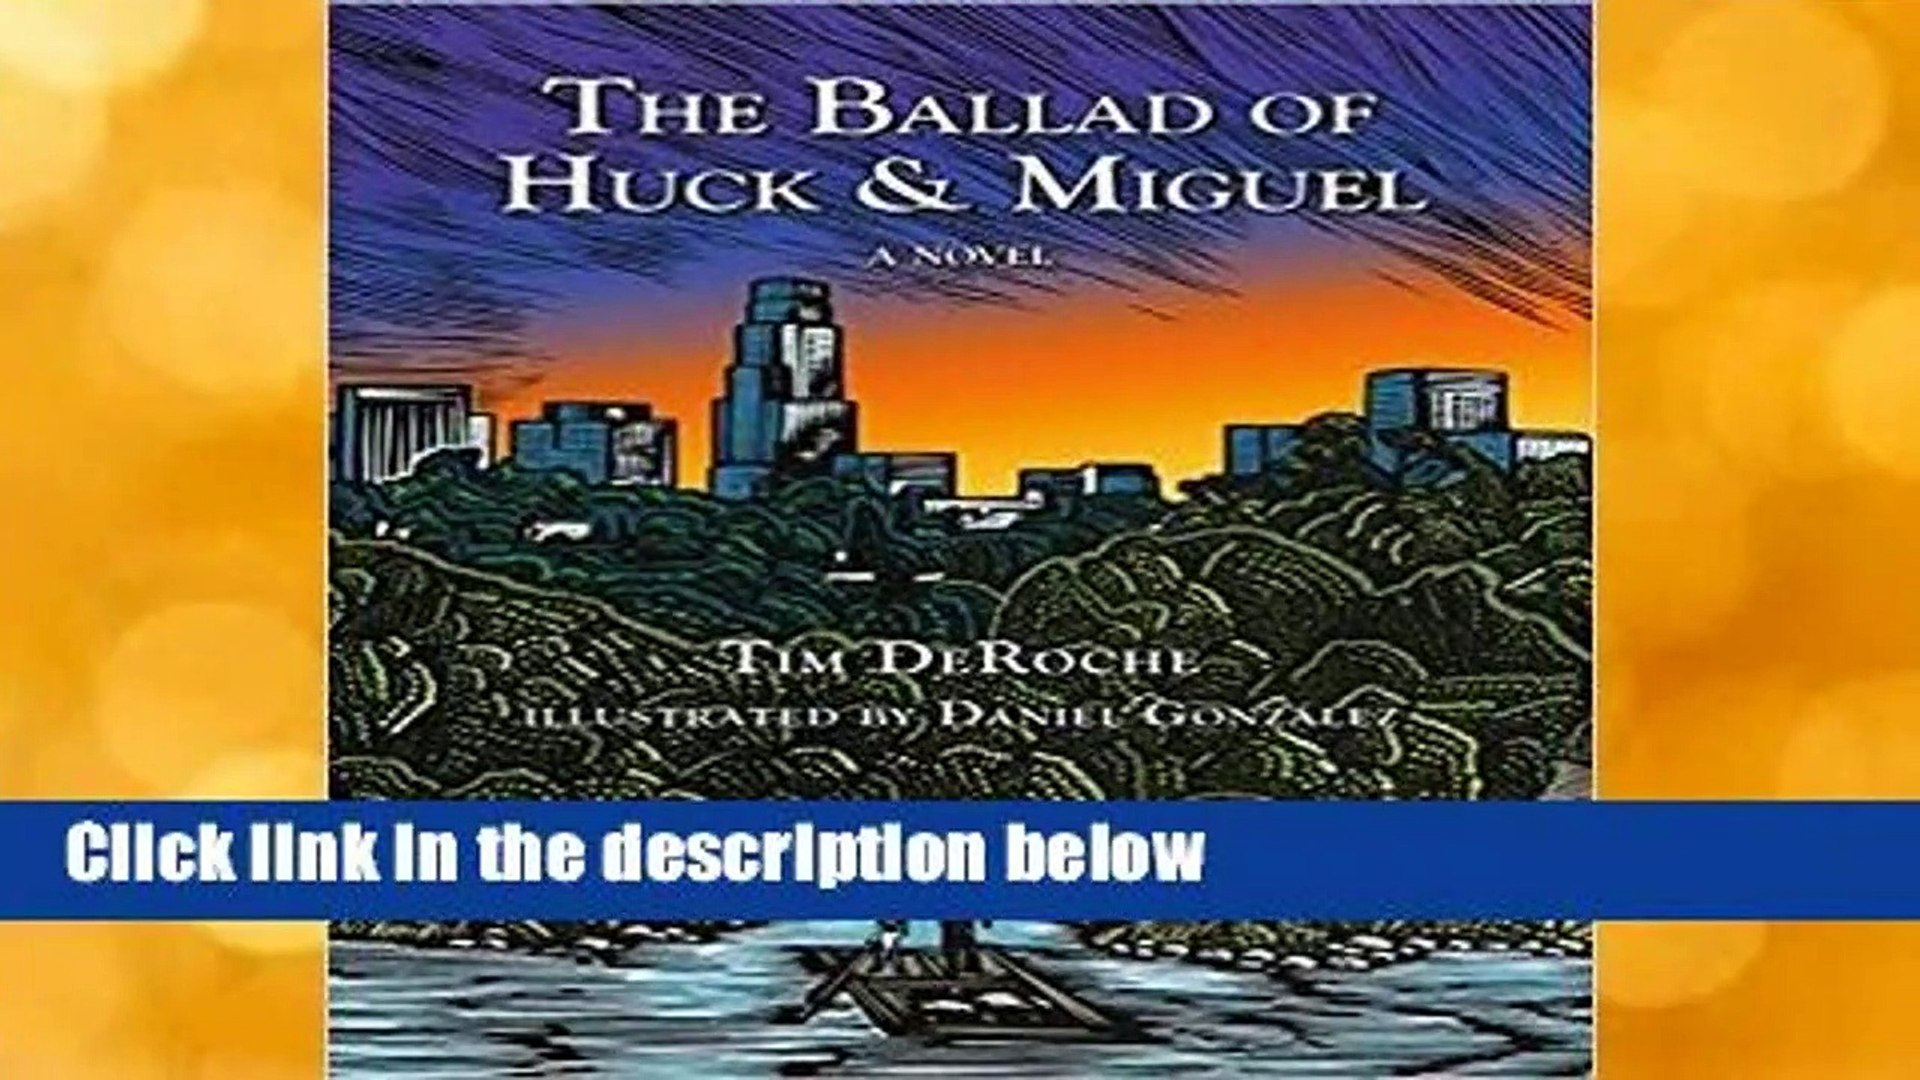 About For Books  The Ballad of Huck & Miguel  Review